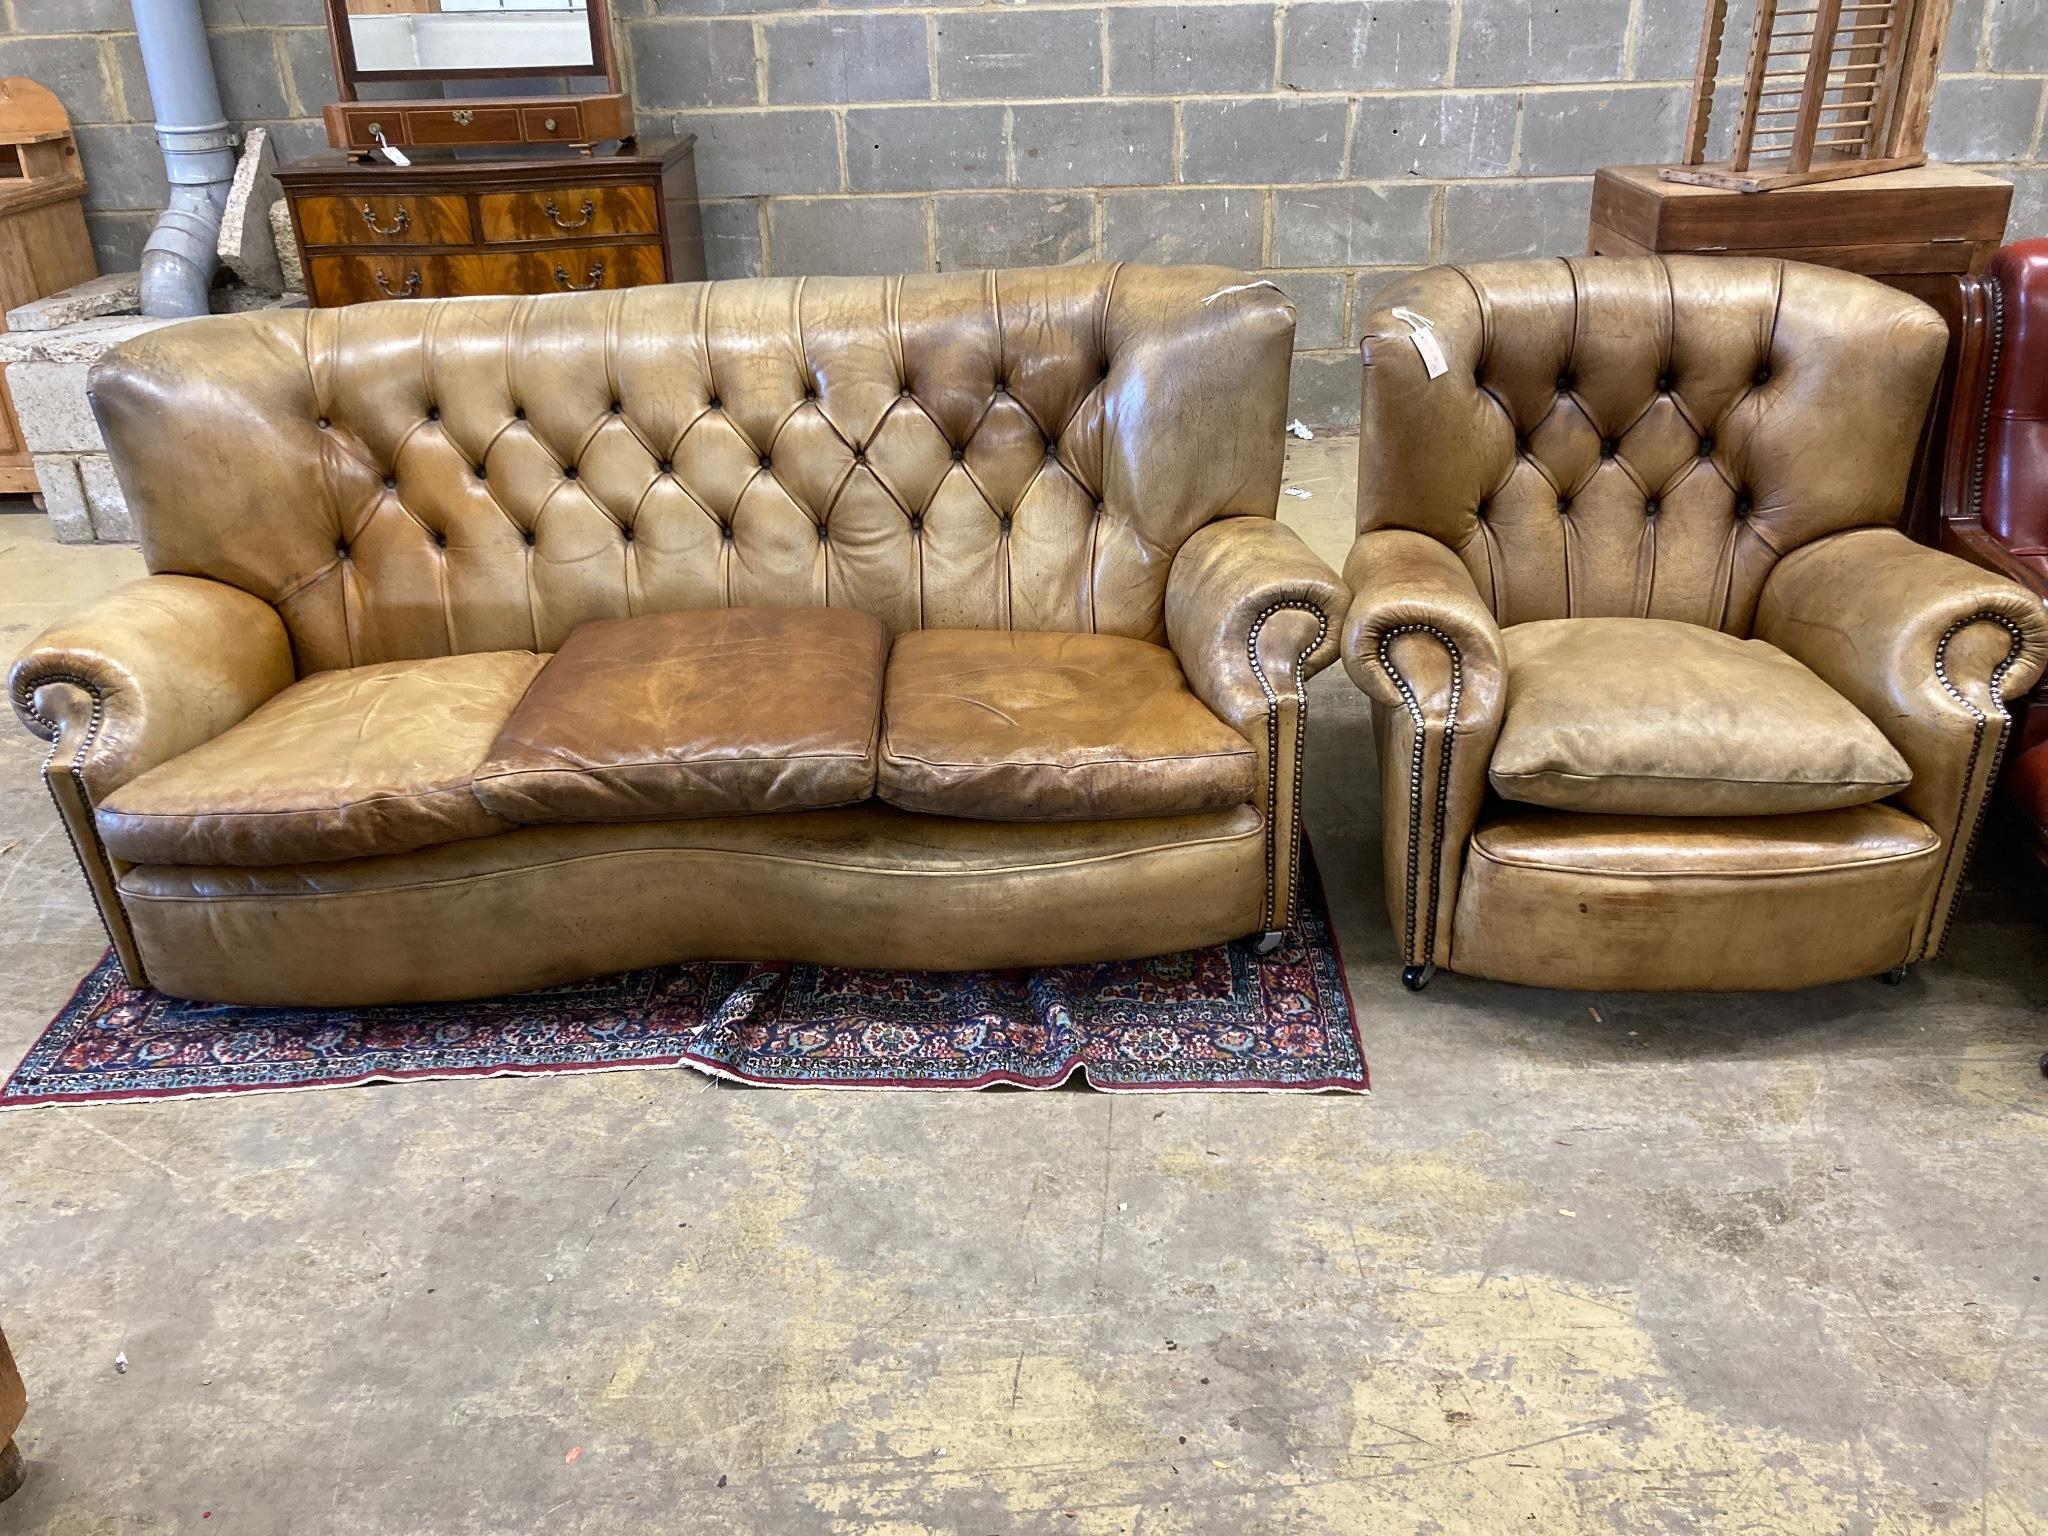 A three-seater Chesterfield leather settee, length 180cm, depth 100cm, height 84cm and a matching